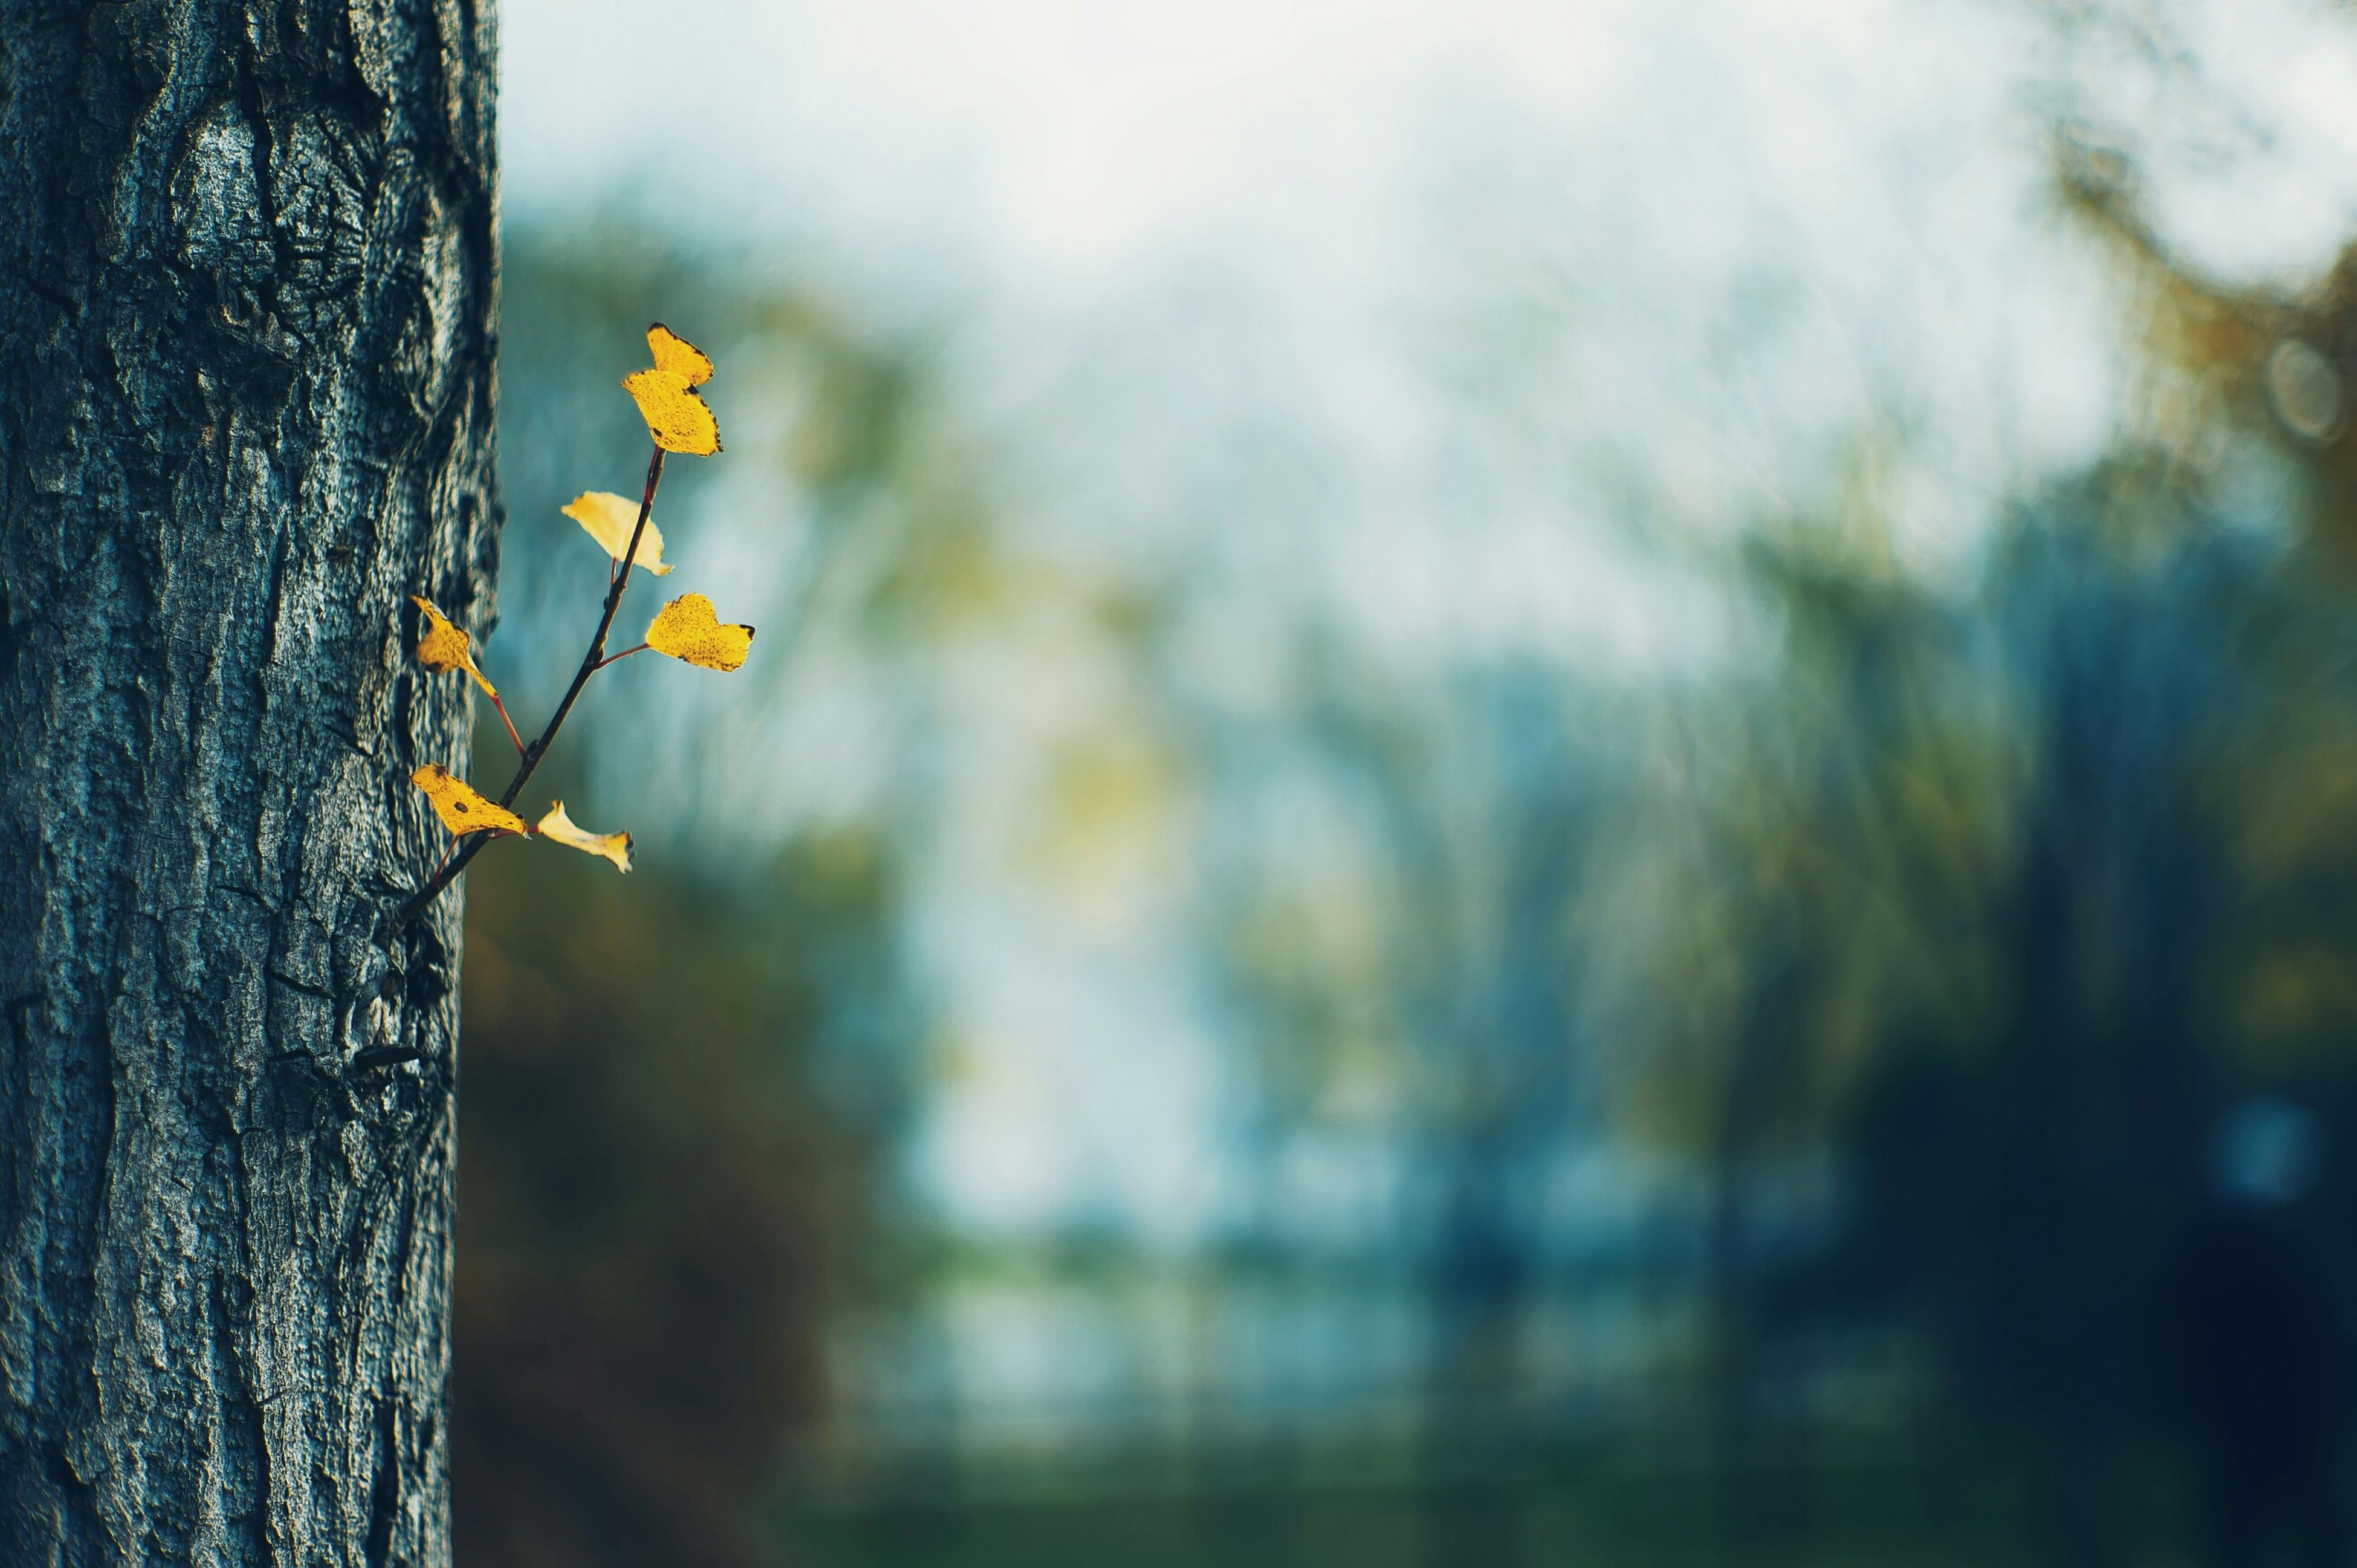 growth, flower, focus on foreground, freshness, close-up, nature, selective focus, plant, fragility, stem, beauty in nature, day, tree, no people, outdoors, yellow, growing, botany, bud, leaf